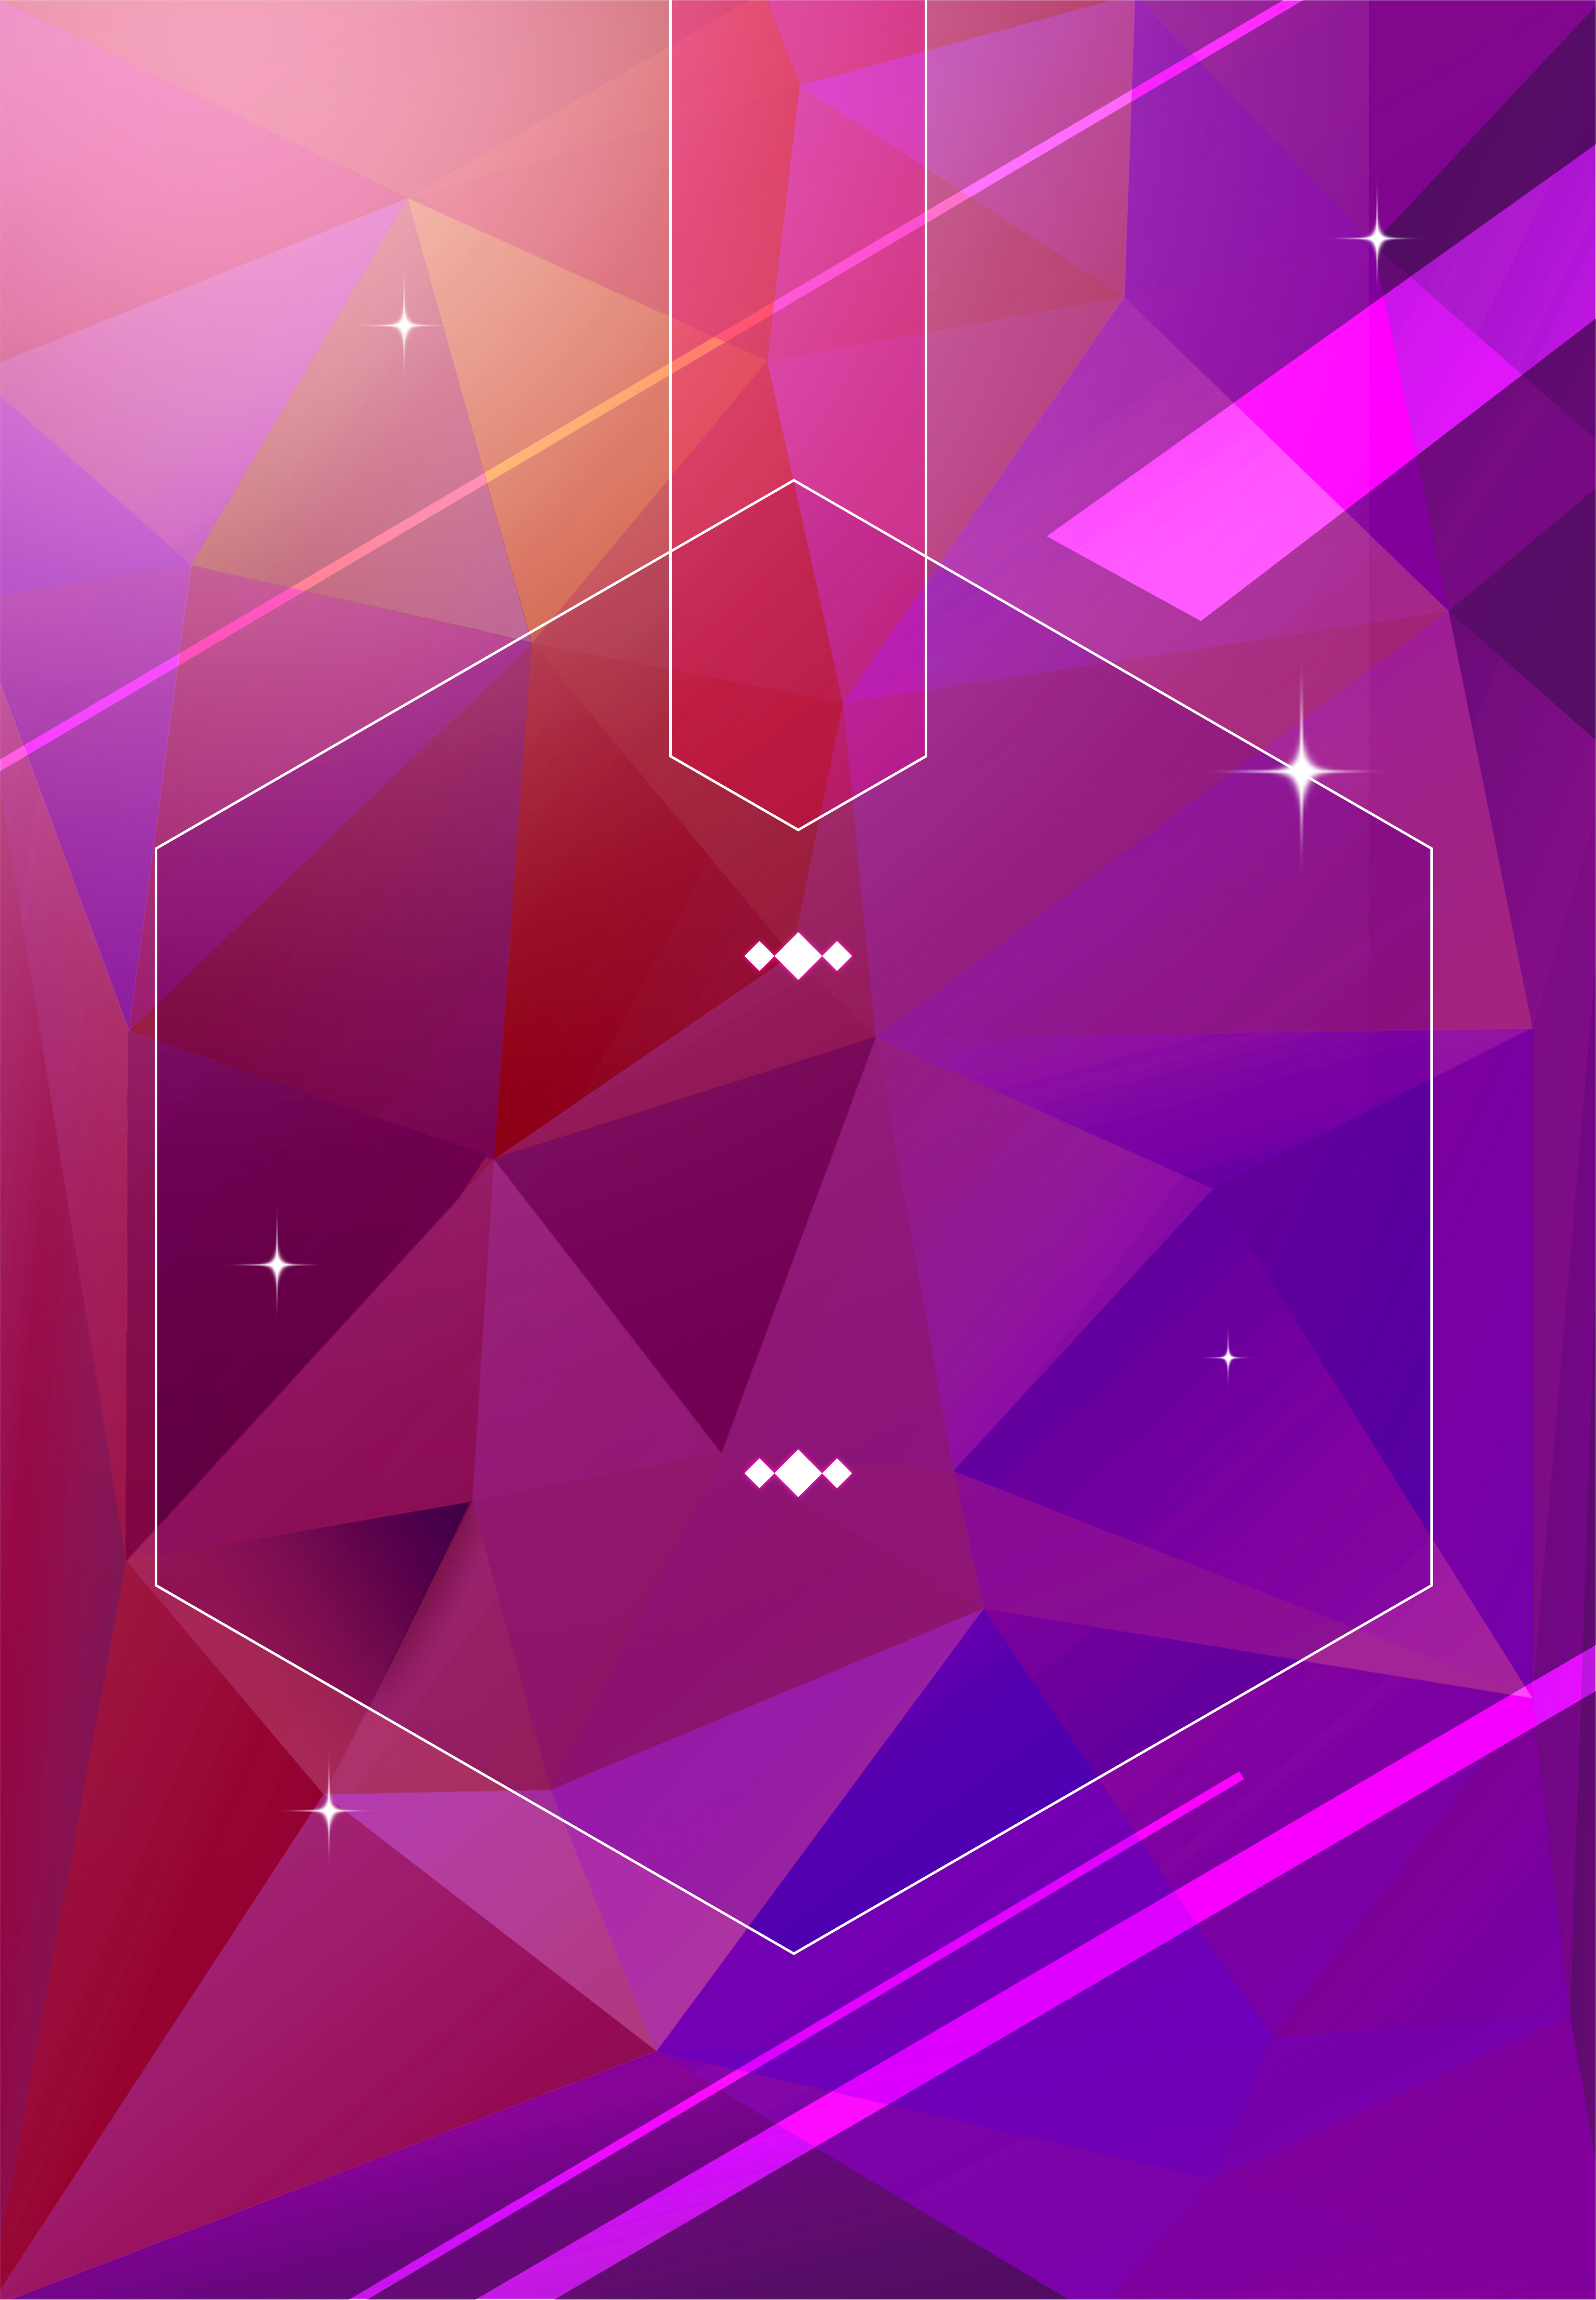 Free Fall Cartoon Wallpaper Promotional Discount Poster Background Gradient Geometry